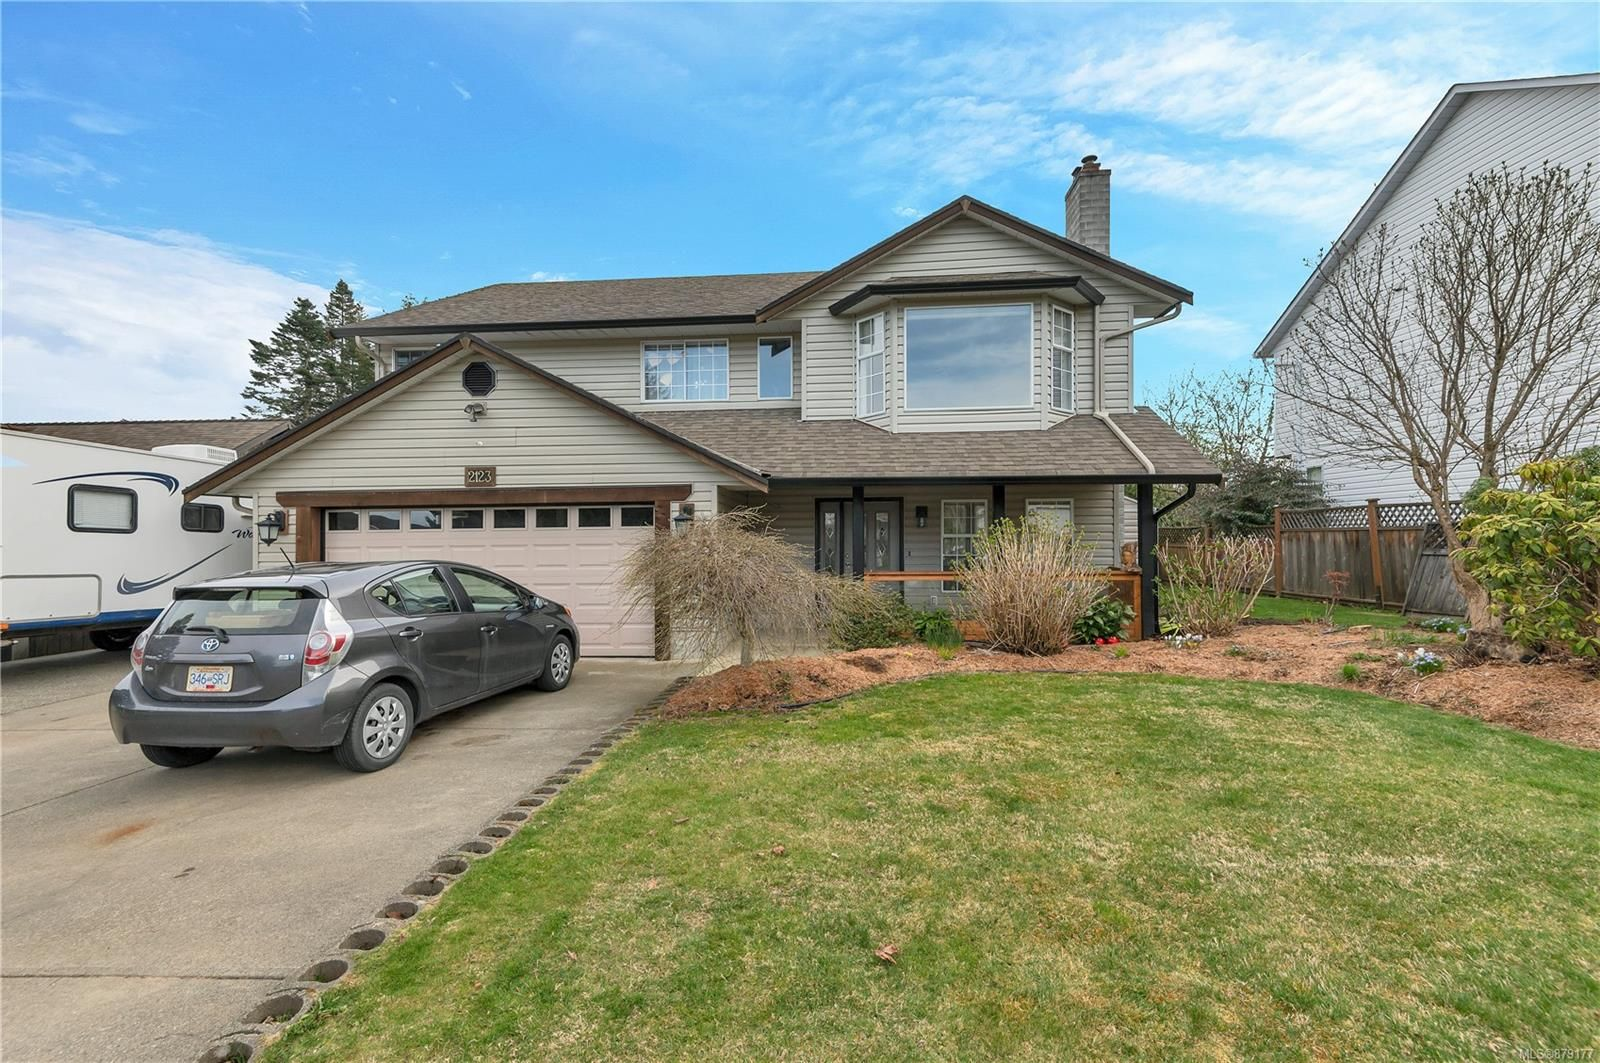 Main Photo: 2123 Bolt Ave in : CV Comox (Town of) House for sale (Comox Valley)  : MLS®# 879177